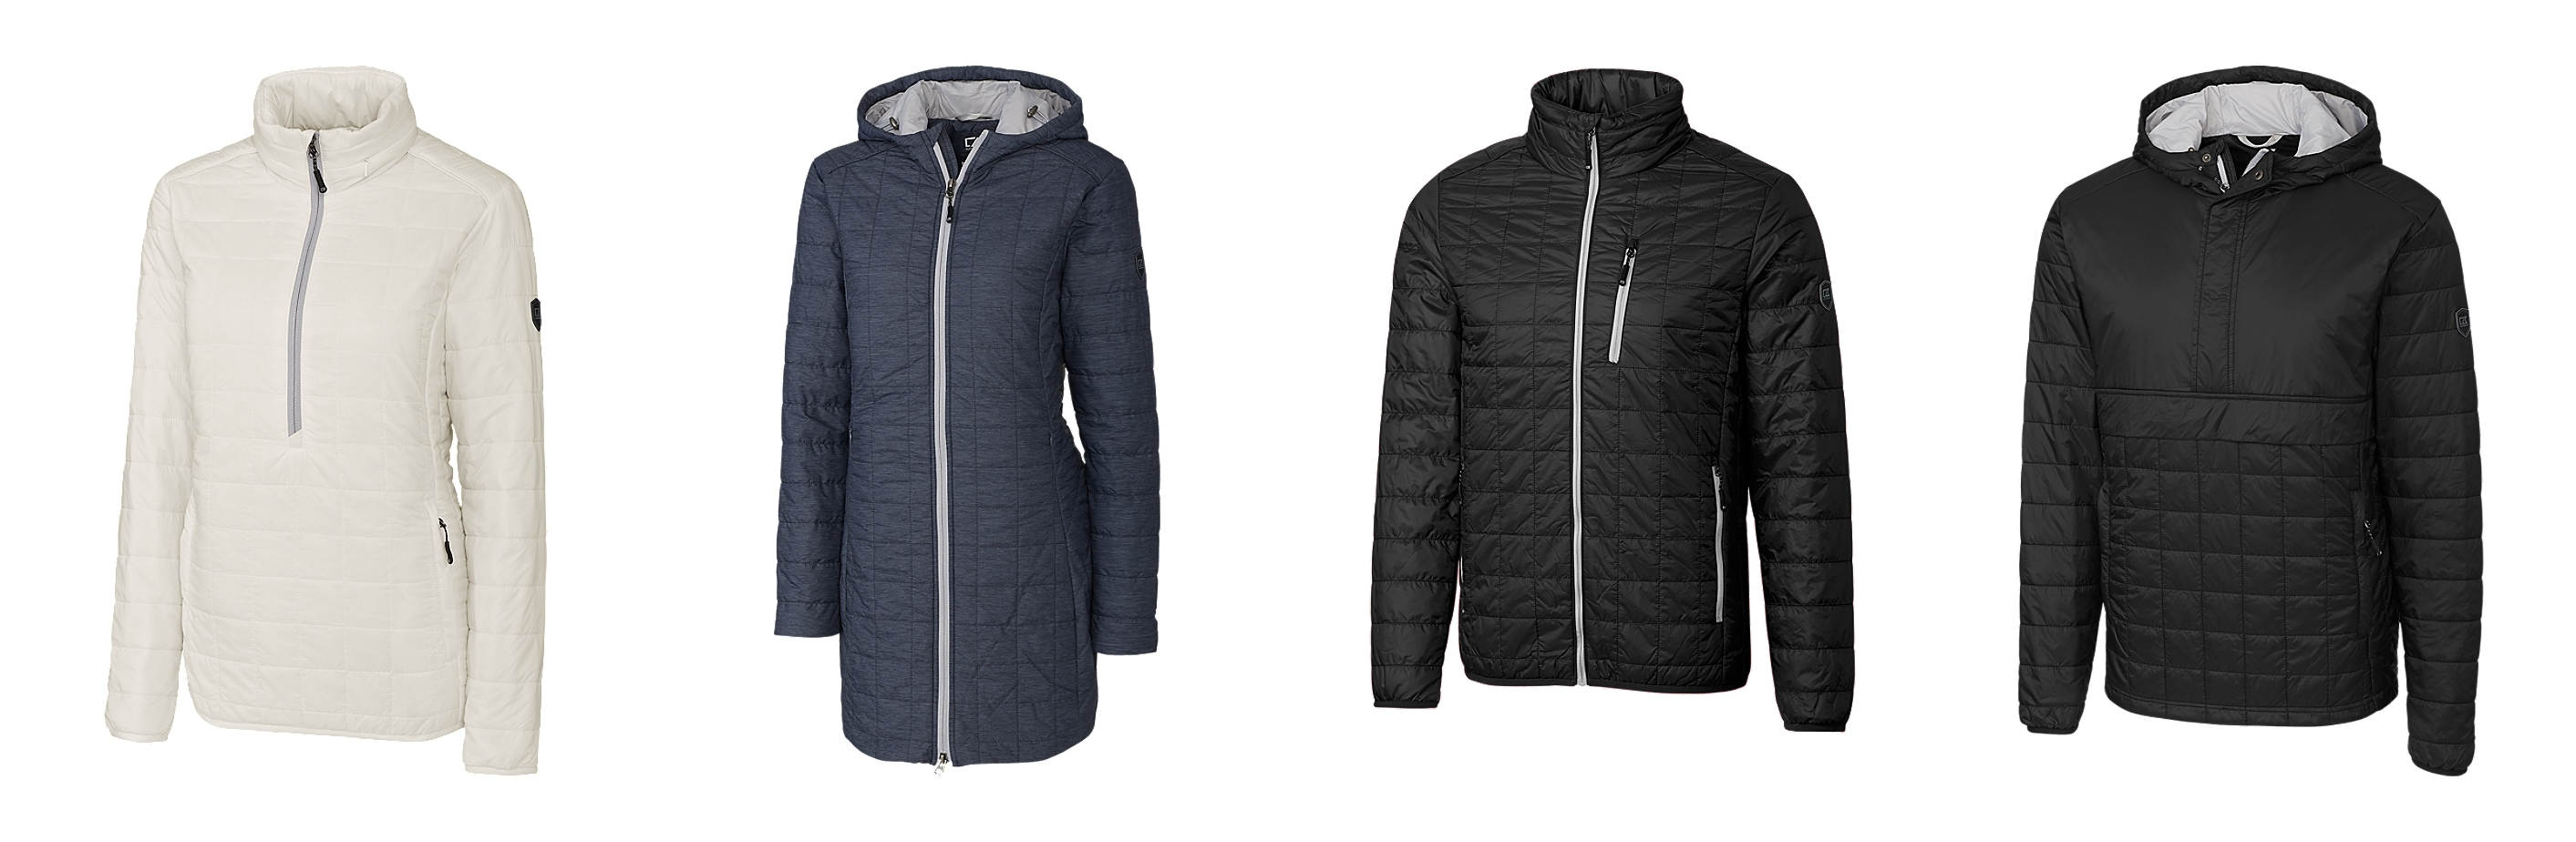 Cutter Buck Rainier Jackets and Outerwear from NYFifth